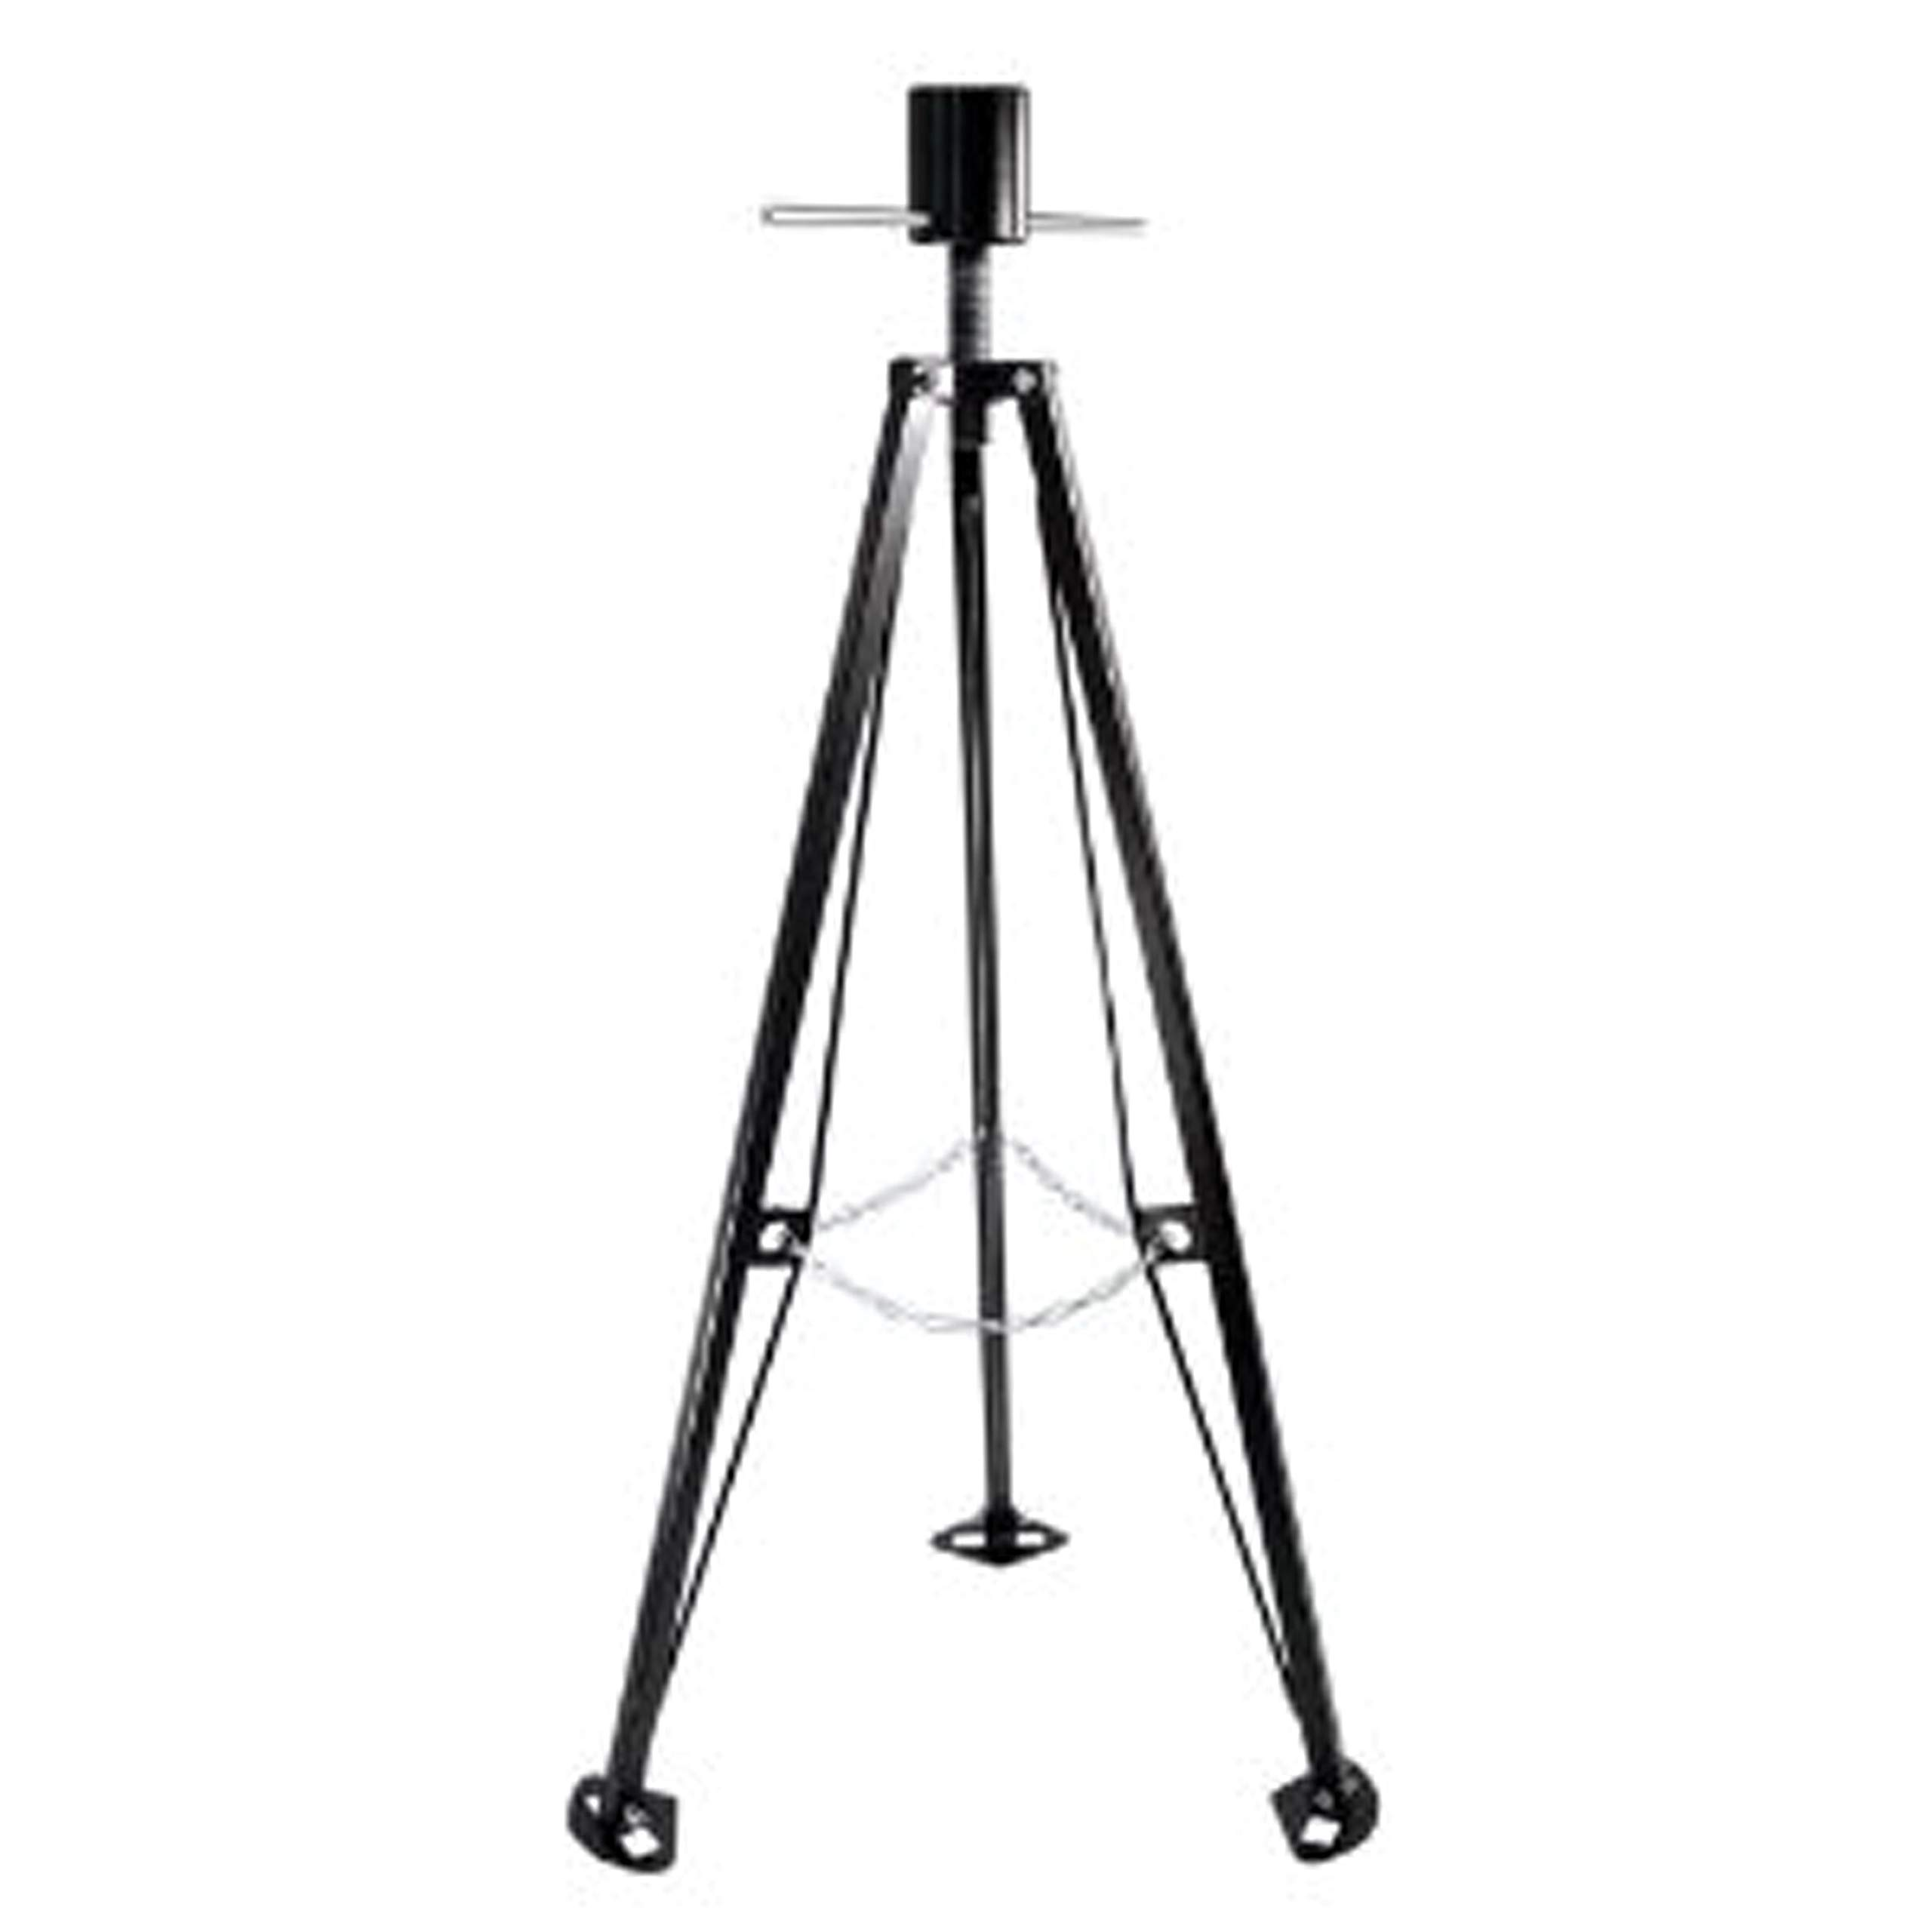 Eaz-Lift Camco King Pin Tripod 5th Wheel Stabilizer, Adjustable from 38.5 50-Inches-(48855) by EAZ LIFT